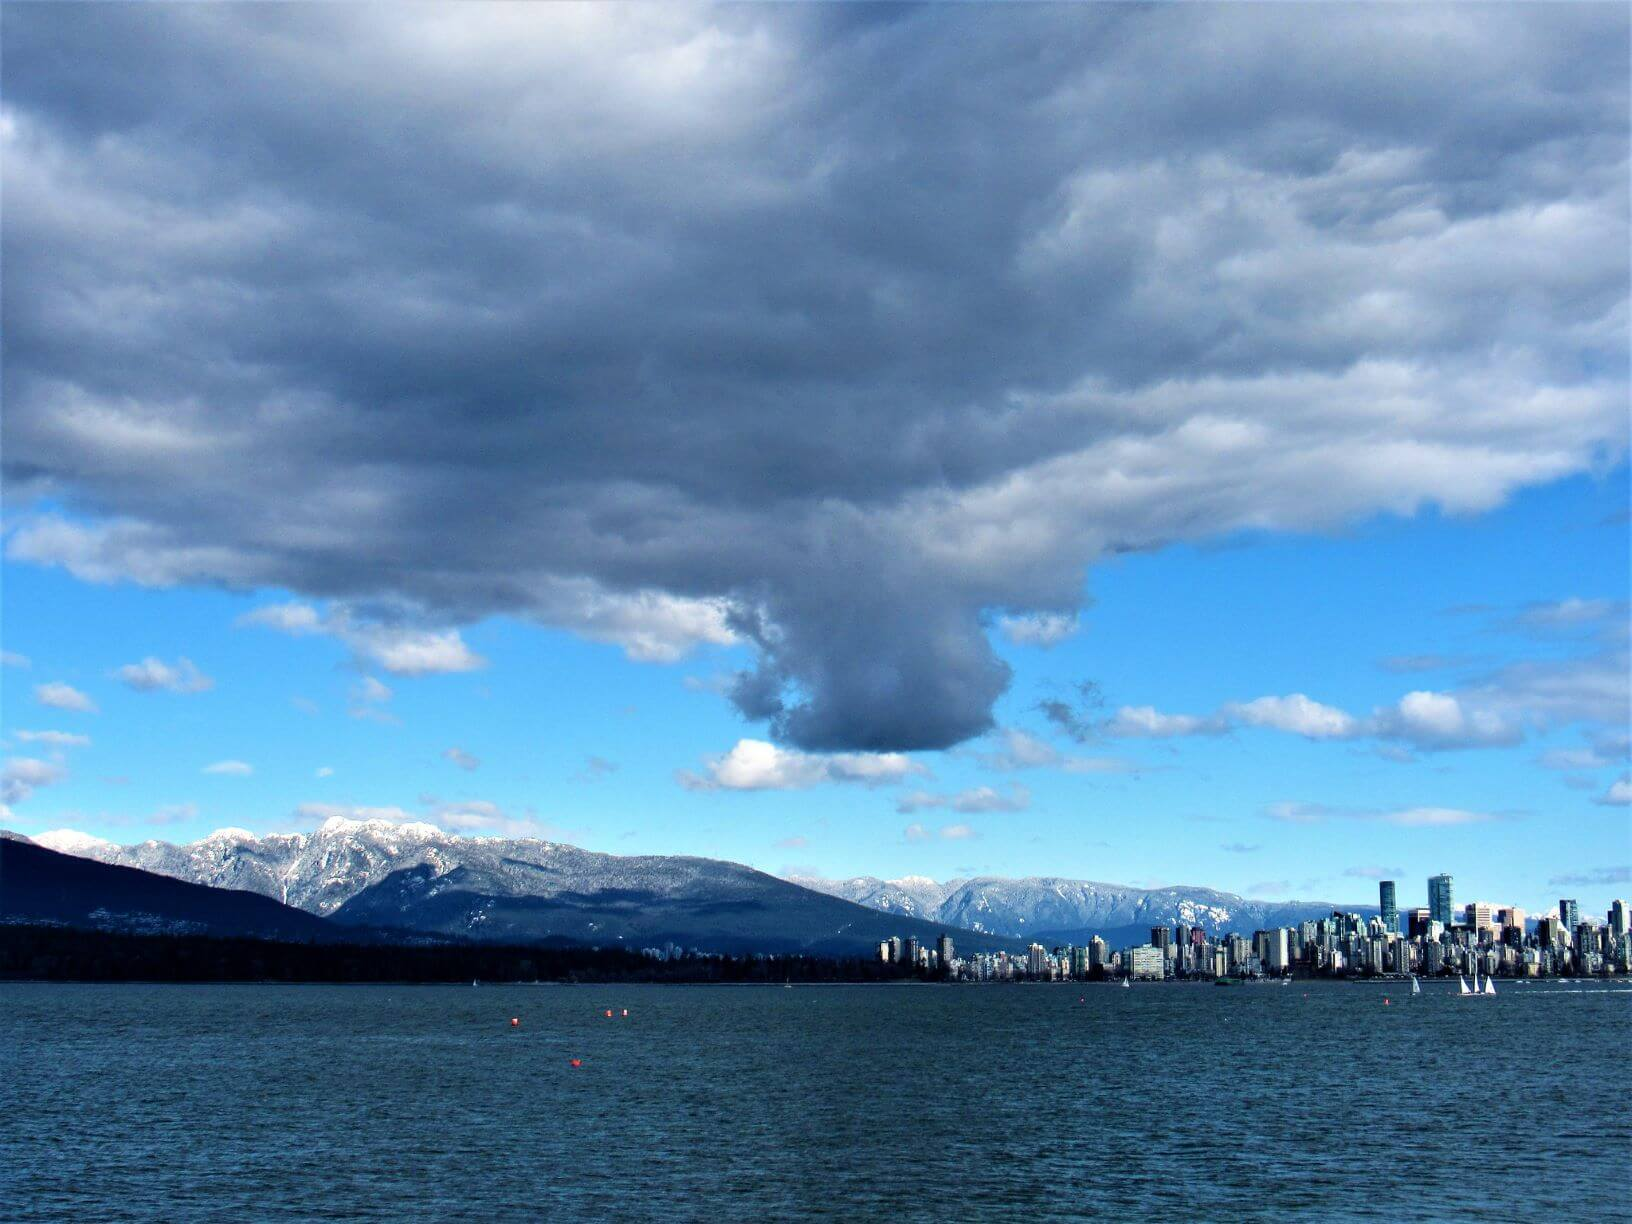 View of Vancouver British Columbia from the bay